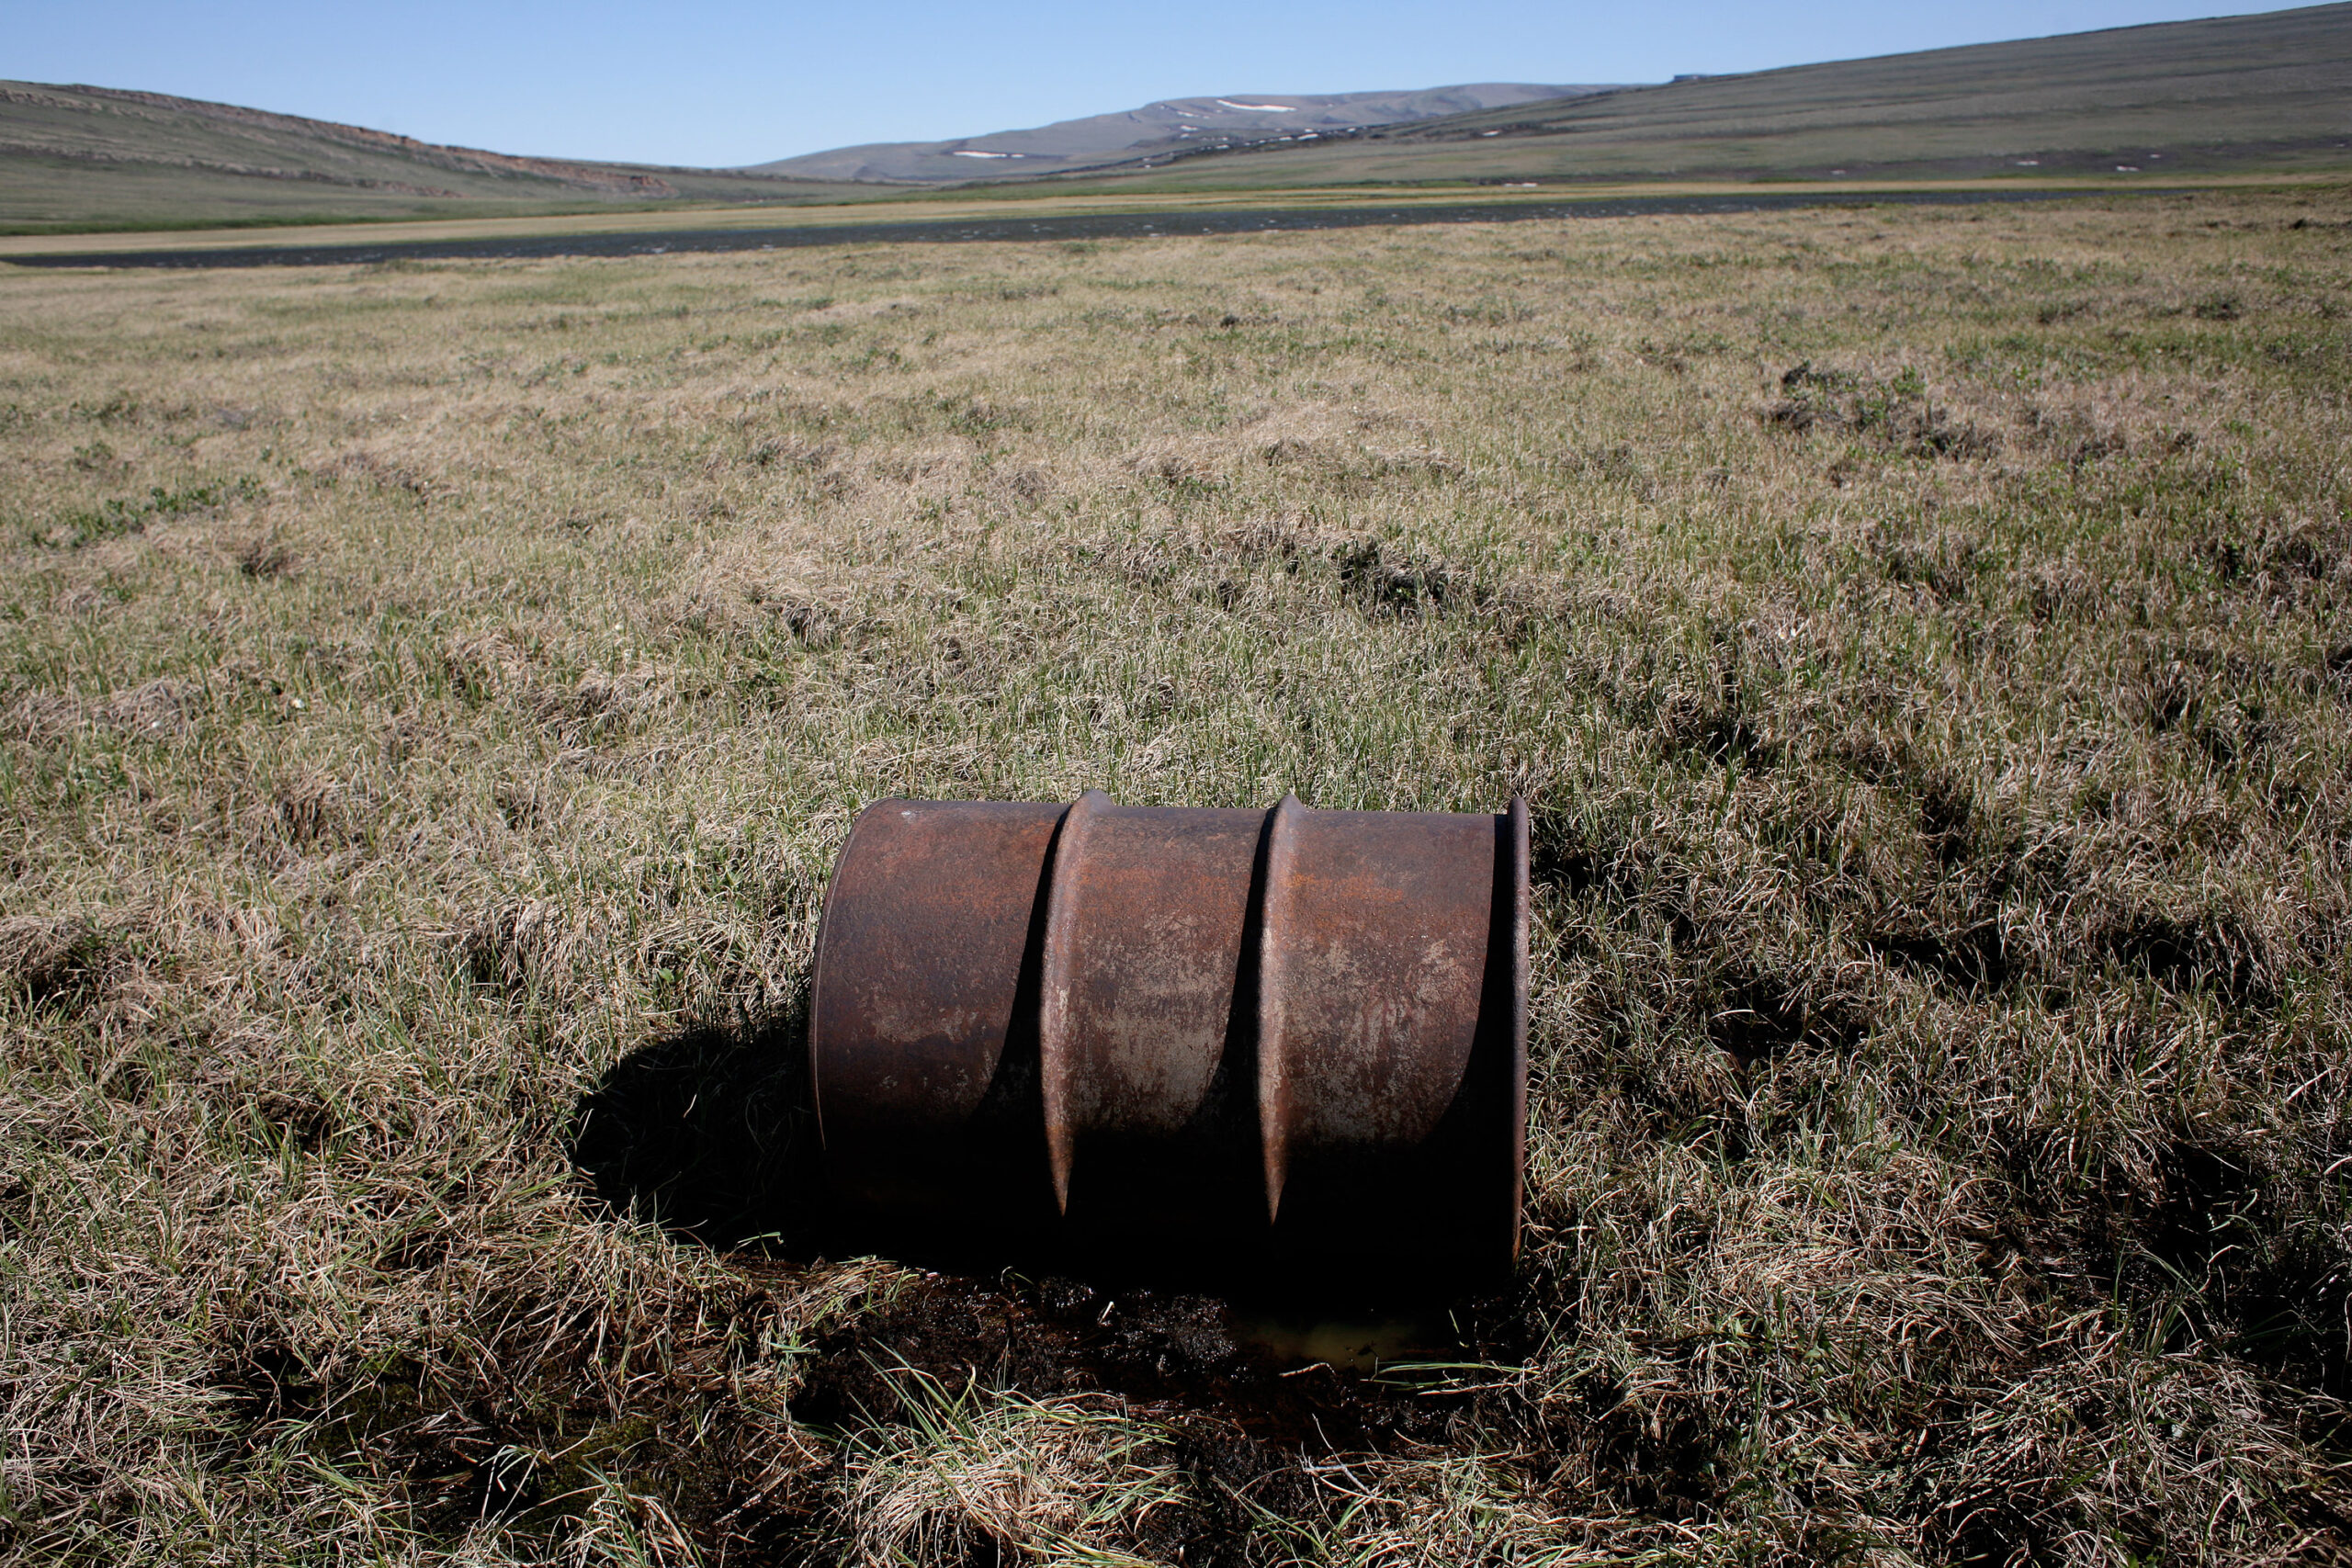 A lone oil barrell in the tundra near the National Petroleum Reserve. Credit: Andrew Lichtenstein/Corbis via Getty Images